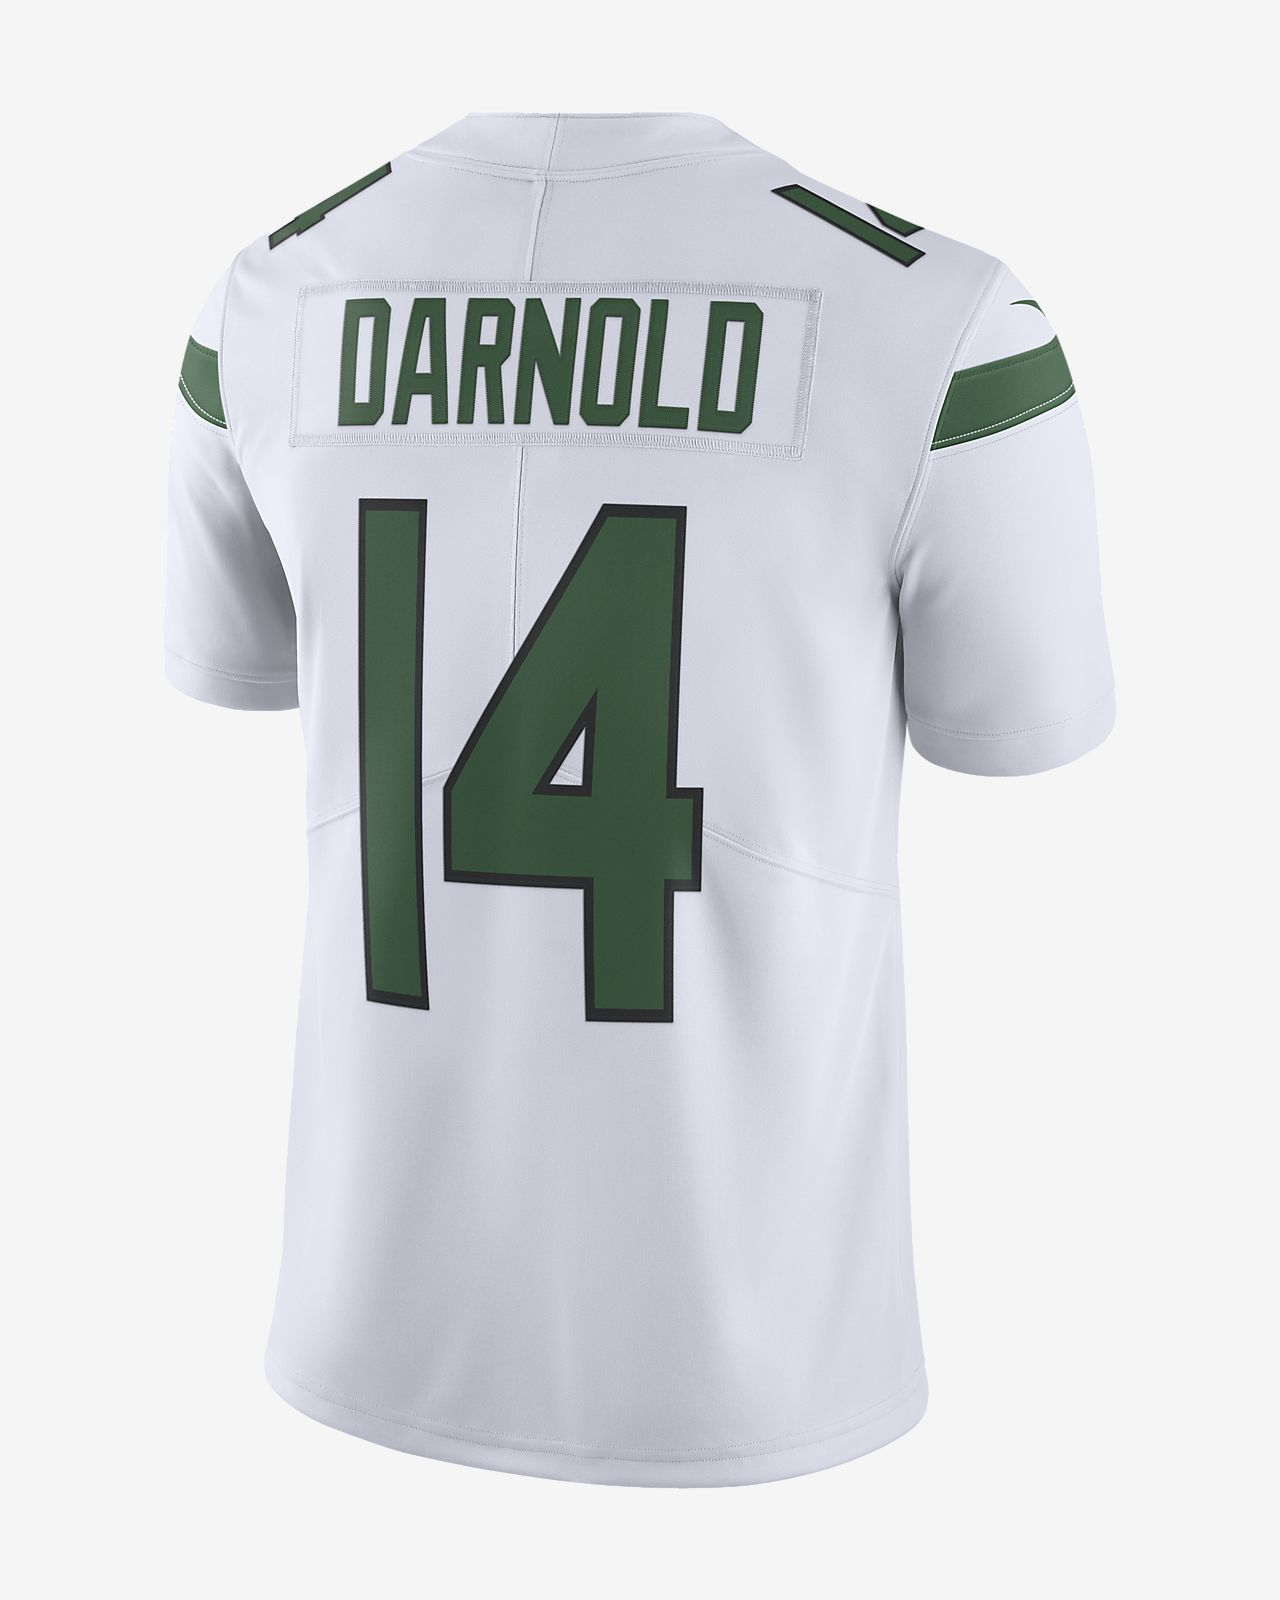 224a9bbbb new york jets shirts sale | Coupon code